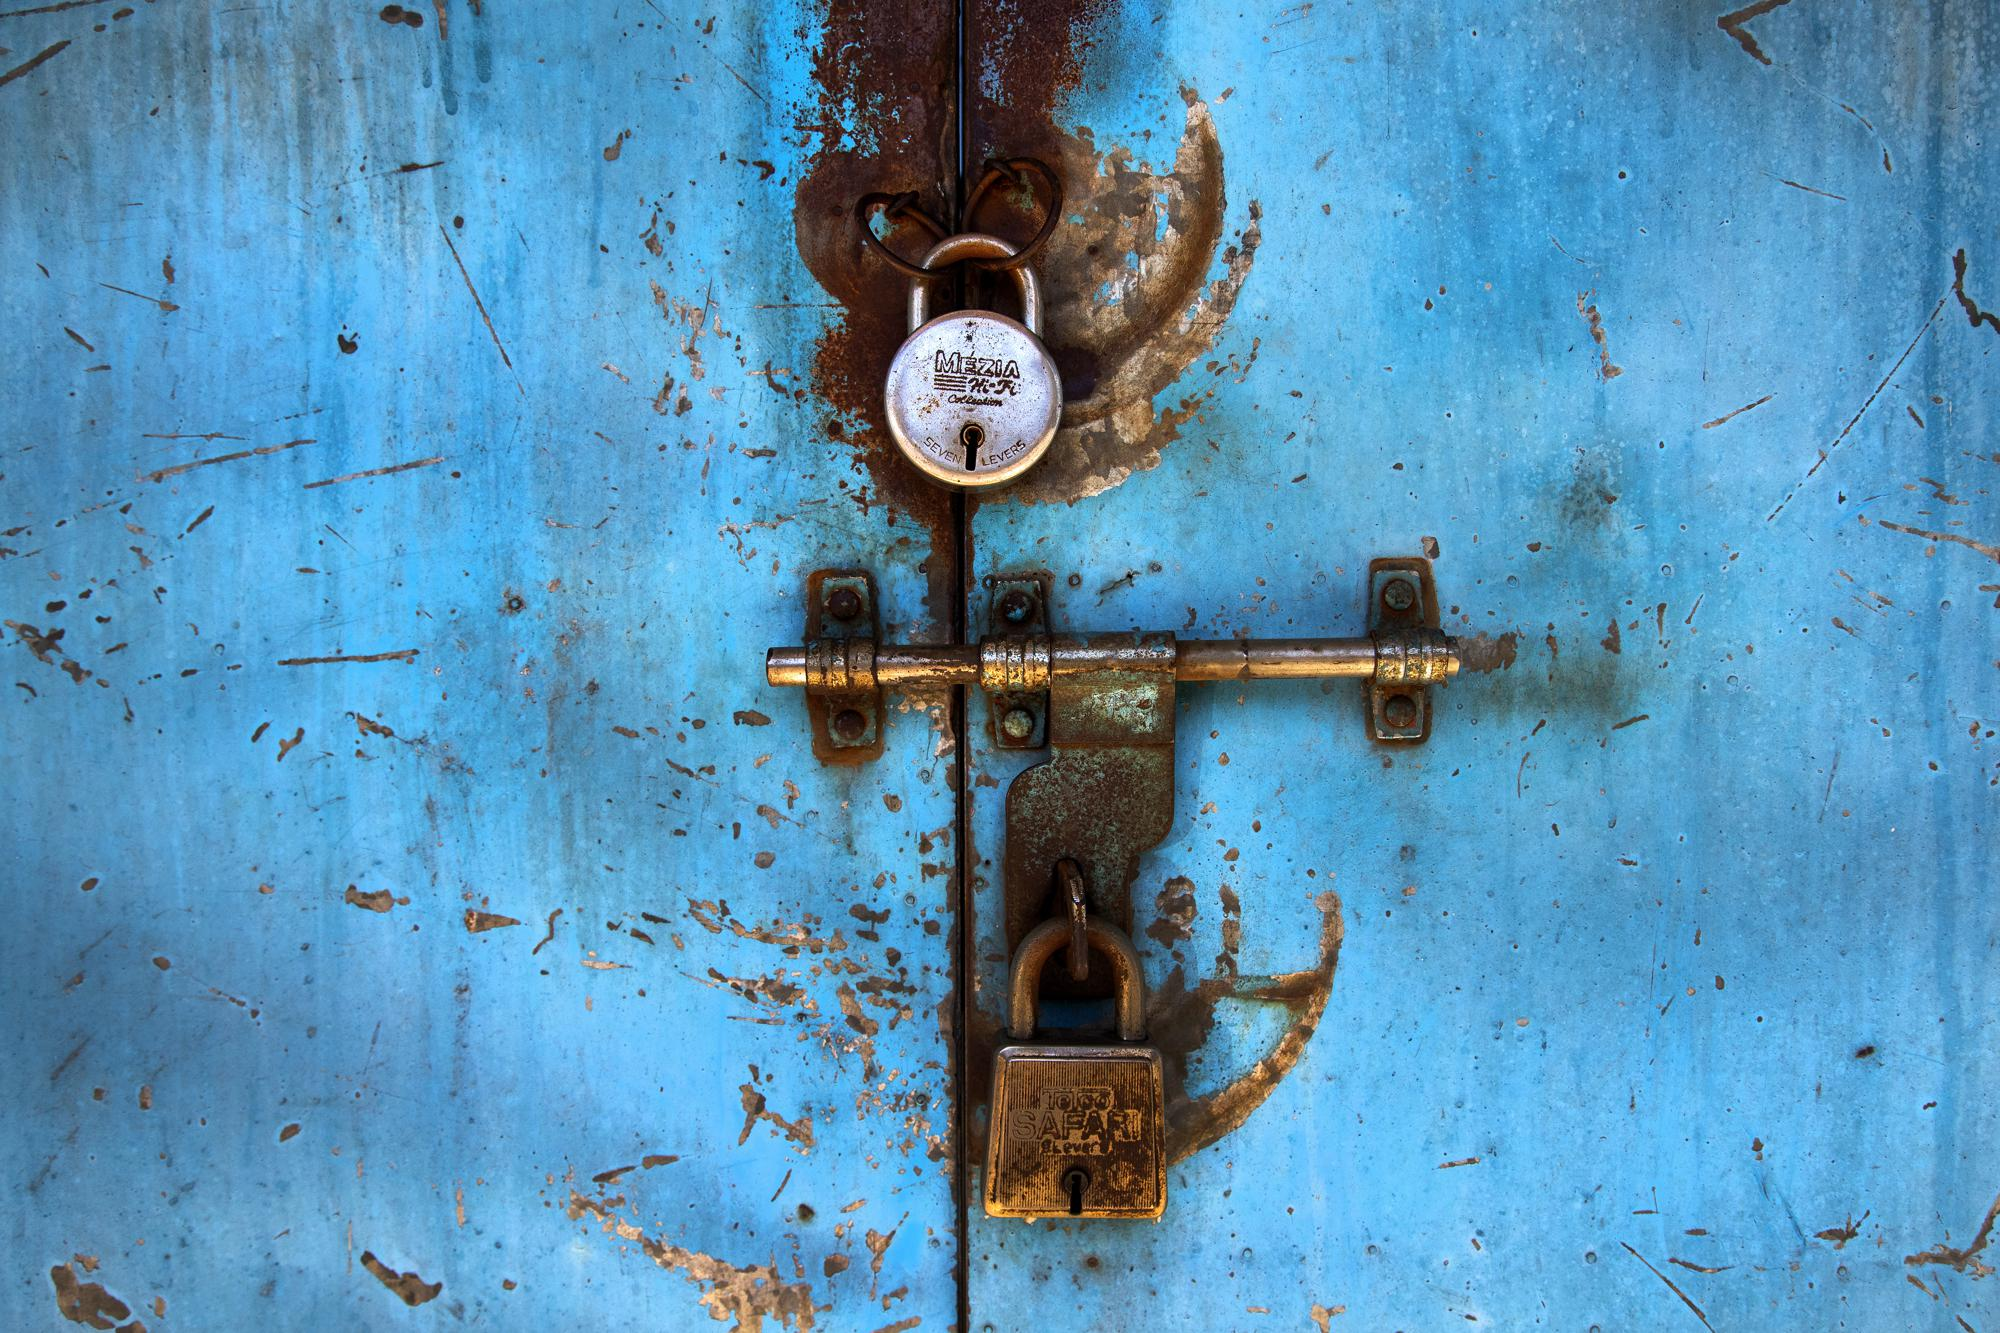 A shop is seen locked at a market area in Gauhati, India on June 18, 2021. Rows of locked shops confront bargain-hunters for most of the day in Fancy Bazar, a nearly 200-year-old market that offered cheap prices until the COVID-19 pandemic hit Gauhati, the biggest city in India's remote northeast. (AP Photo/Anupam Nath)